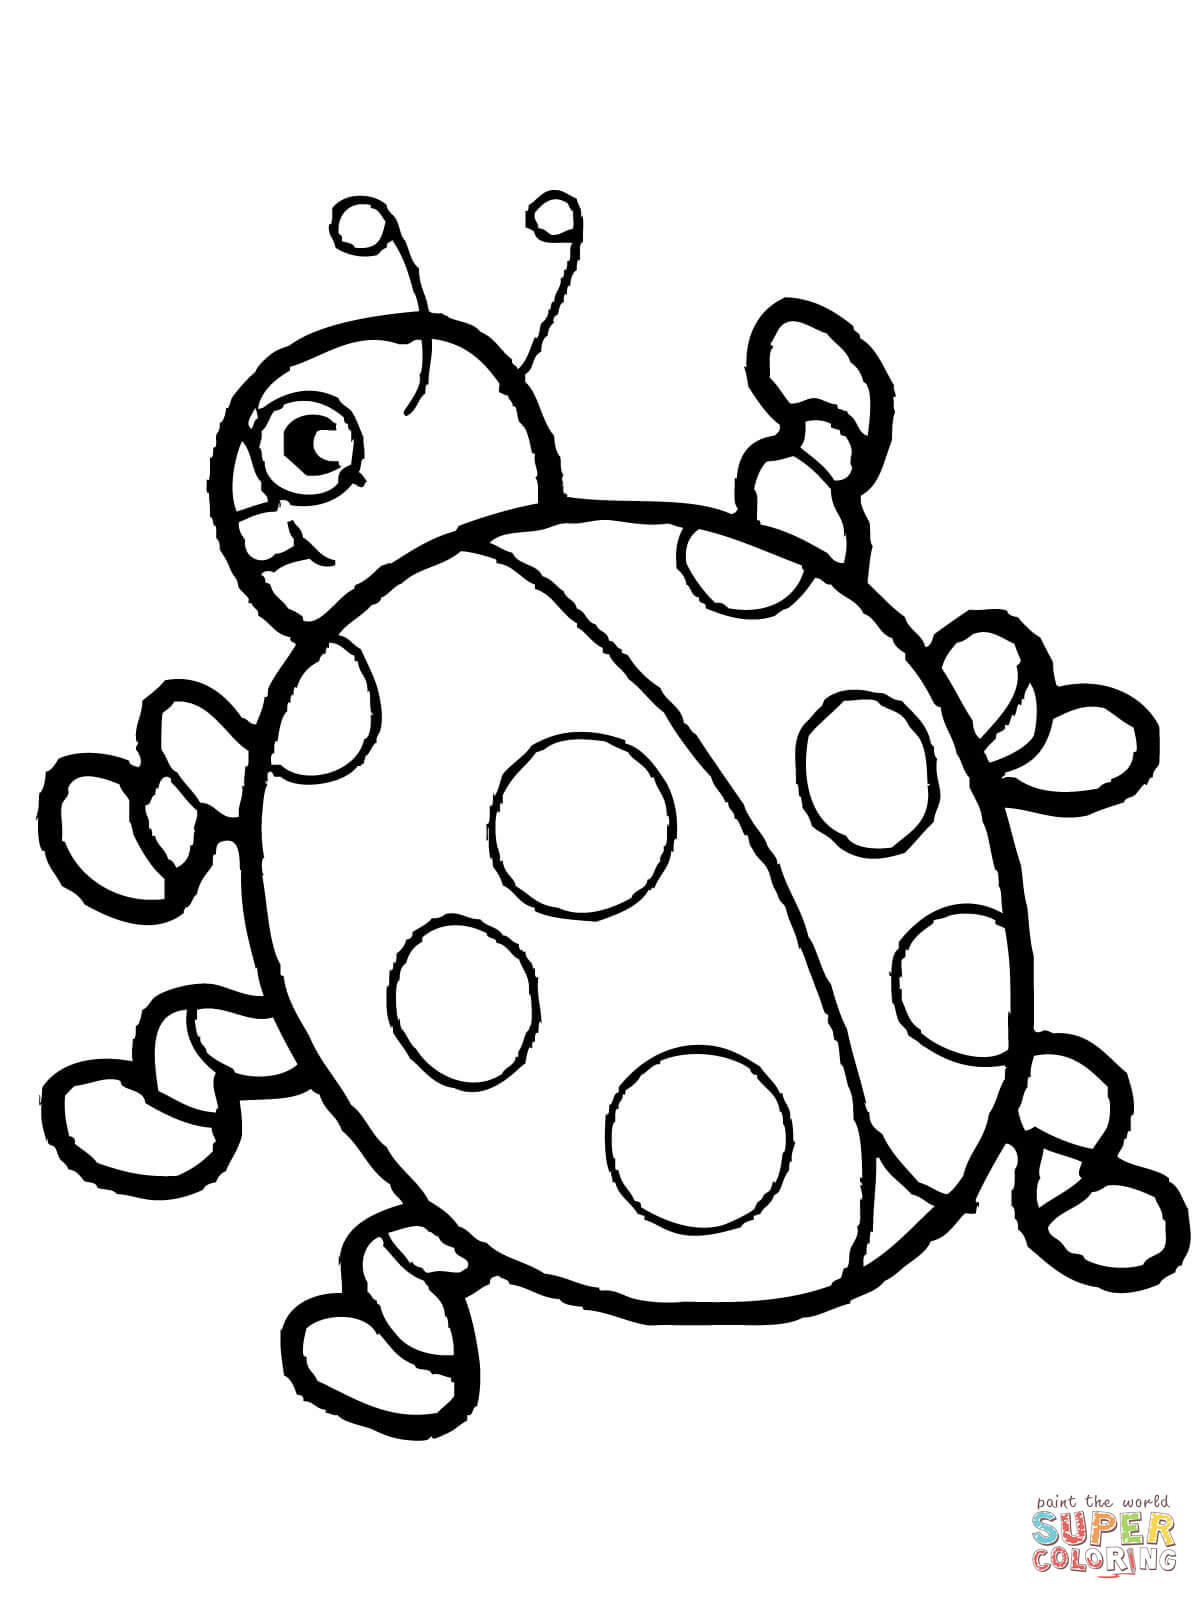 Cute Ladybug Coloring Page Free Printable Coloring Pages